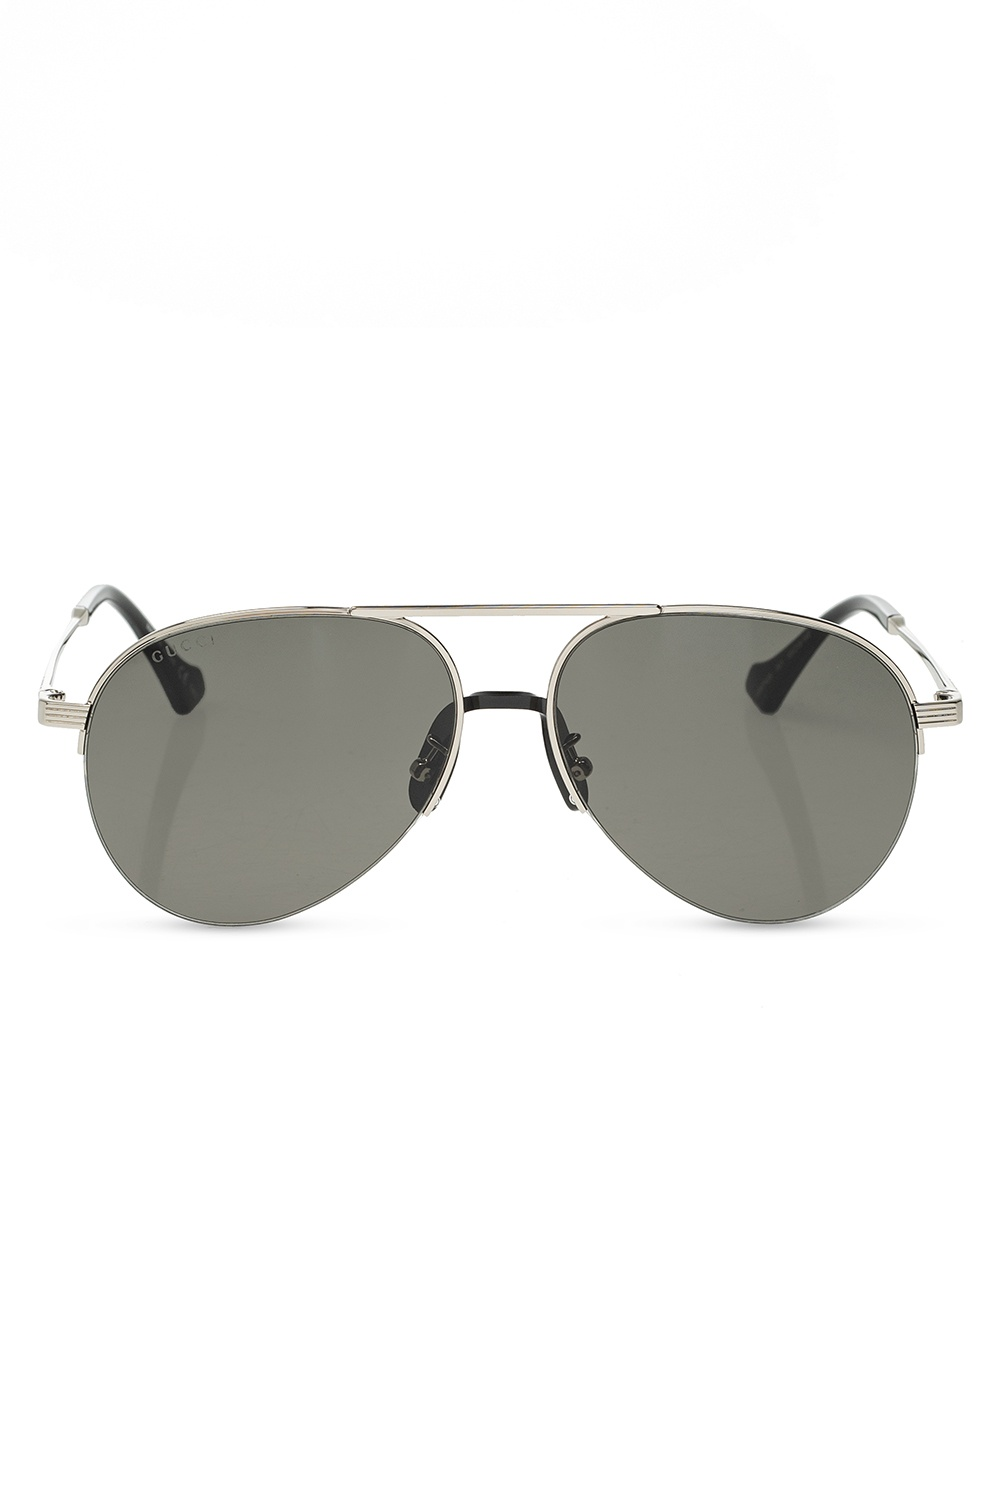 Gucci Sunglasses with logo